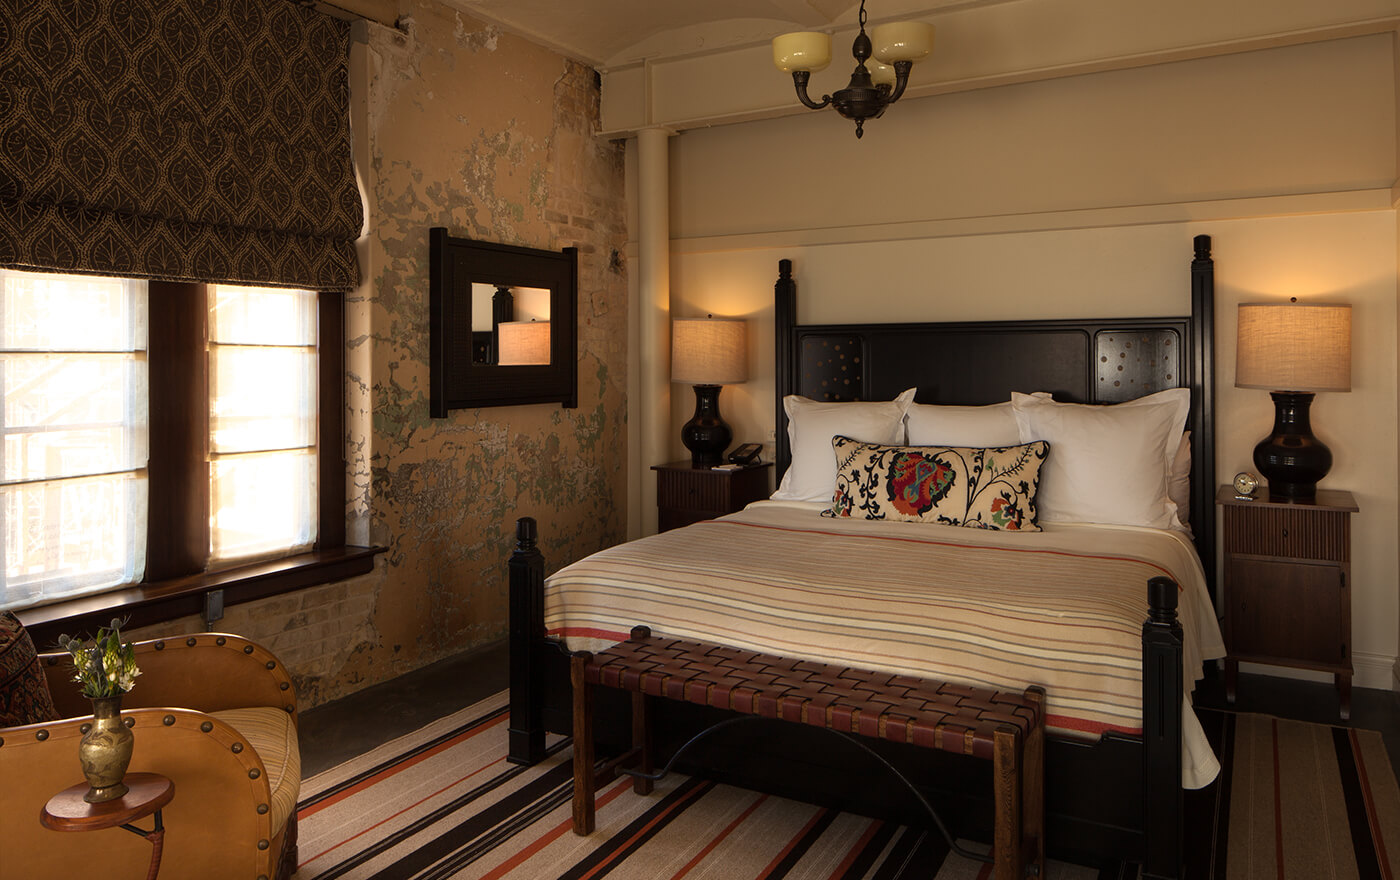 A picture of the bedroom in Hotel Emma's plaza suite option. Pictured is a king sized bed with nightstands and a window.